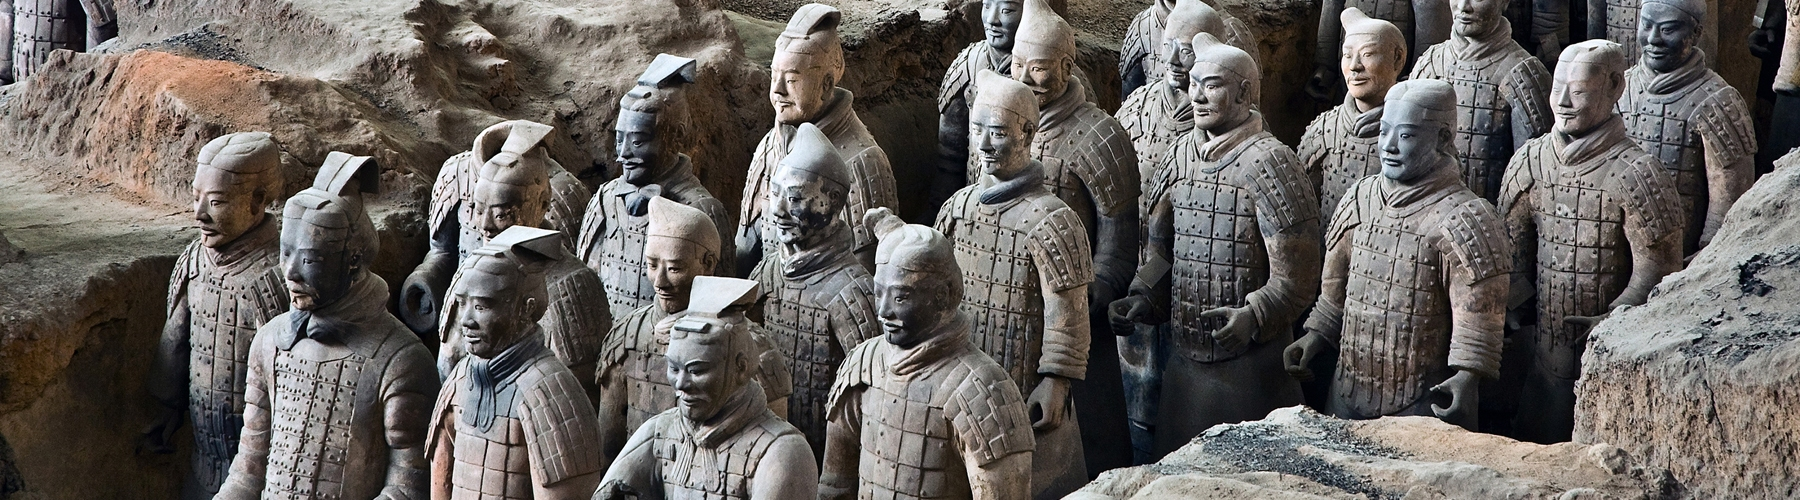 Overseas Exhibitions of the Terracotta Army